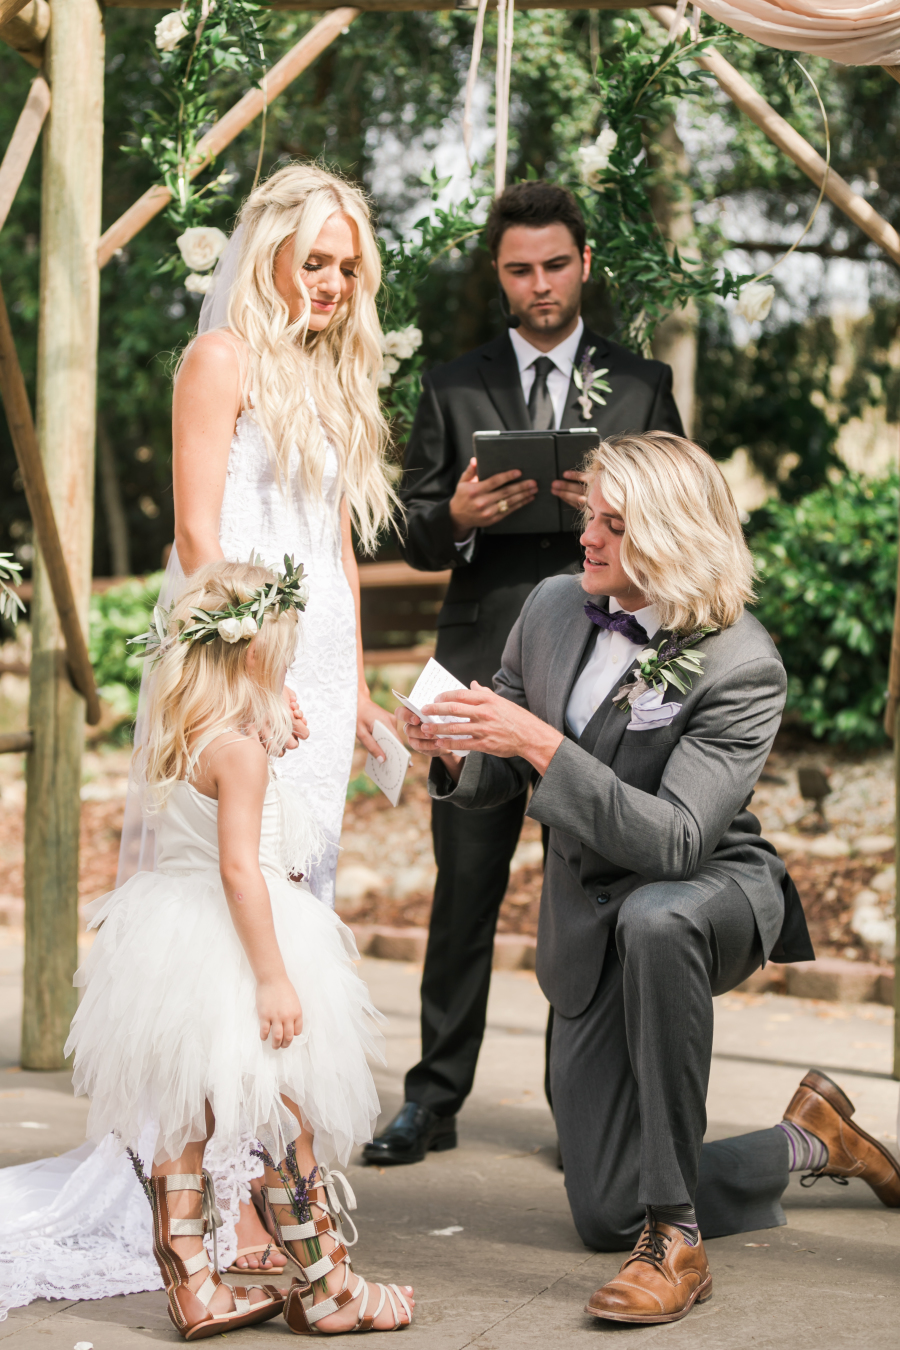 It girl weddings a modern wedding blog part 8 photographer valorie darling photography wedding dress grace loves lace makeup mac cosmetics florist tre fiori floral wedding invitations minted ombrellifo Gallery